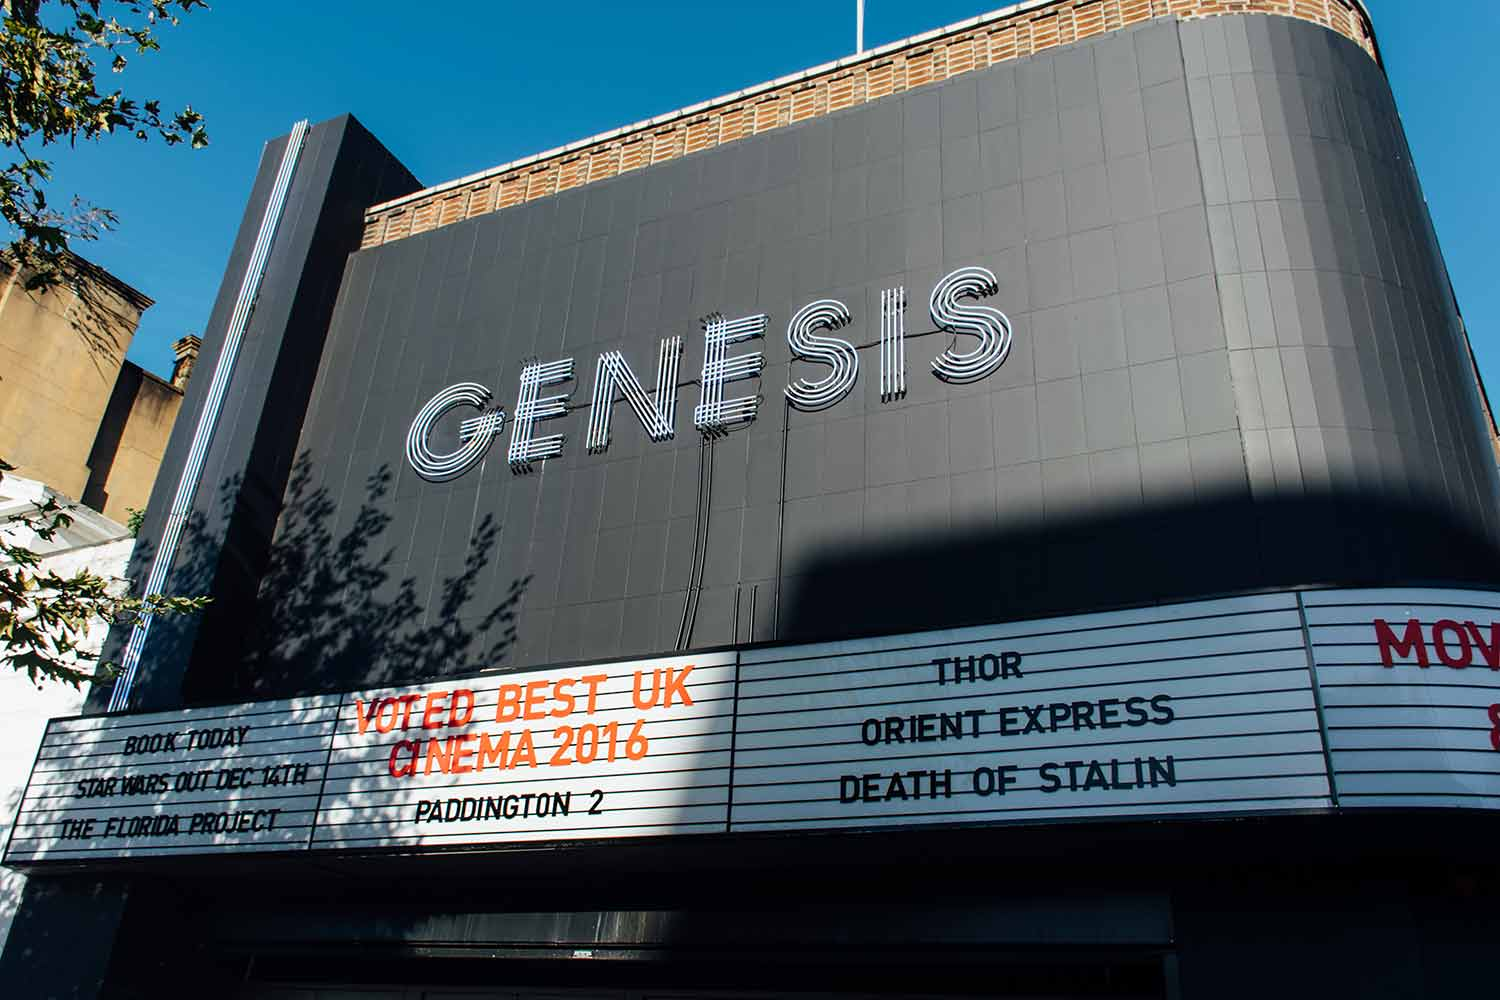 Exterior of Genesis Cinema in Mile End, East London